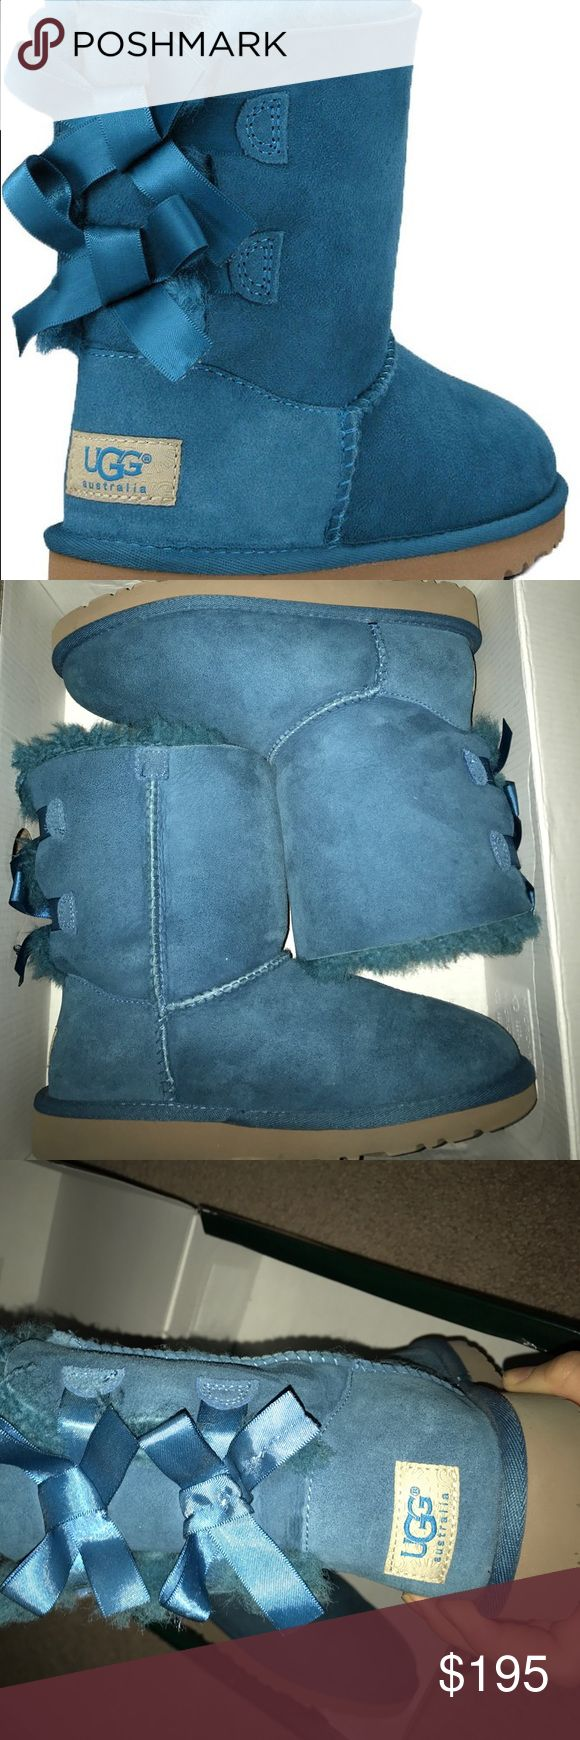 Blue Ugg Australia bailey bows Blue suede, fur still soft, bottom design crisp, bows securely on, no pull strings or stains, only worn twice indoors. UGG Shoes Ankle Boots & Booties